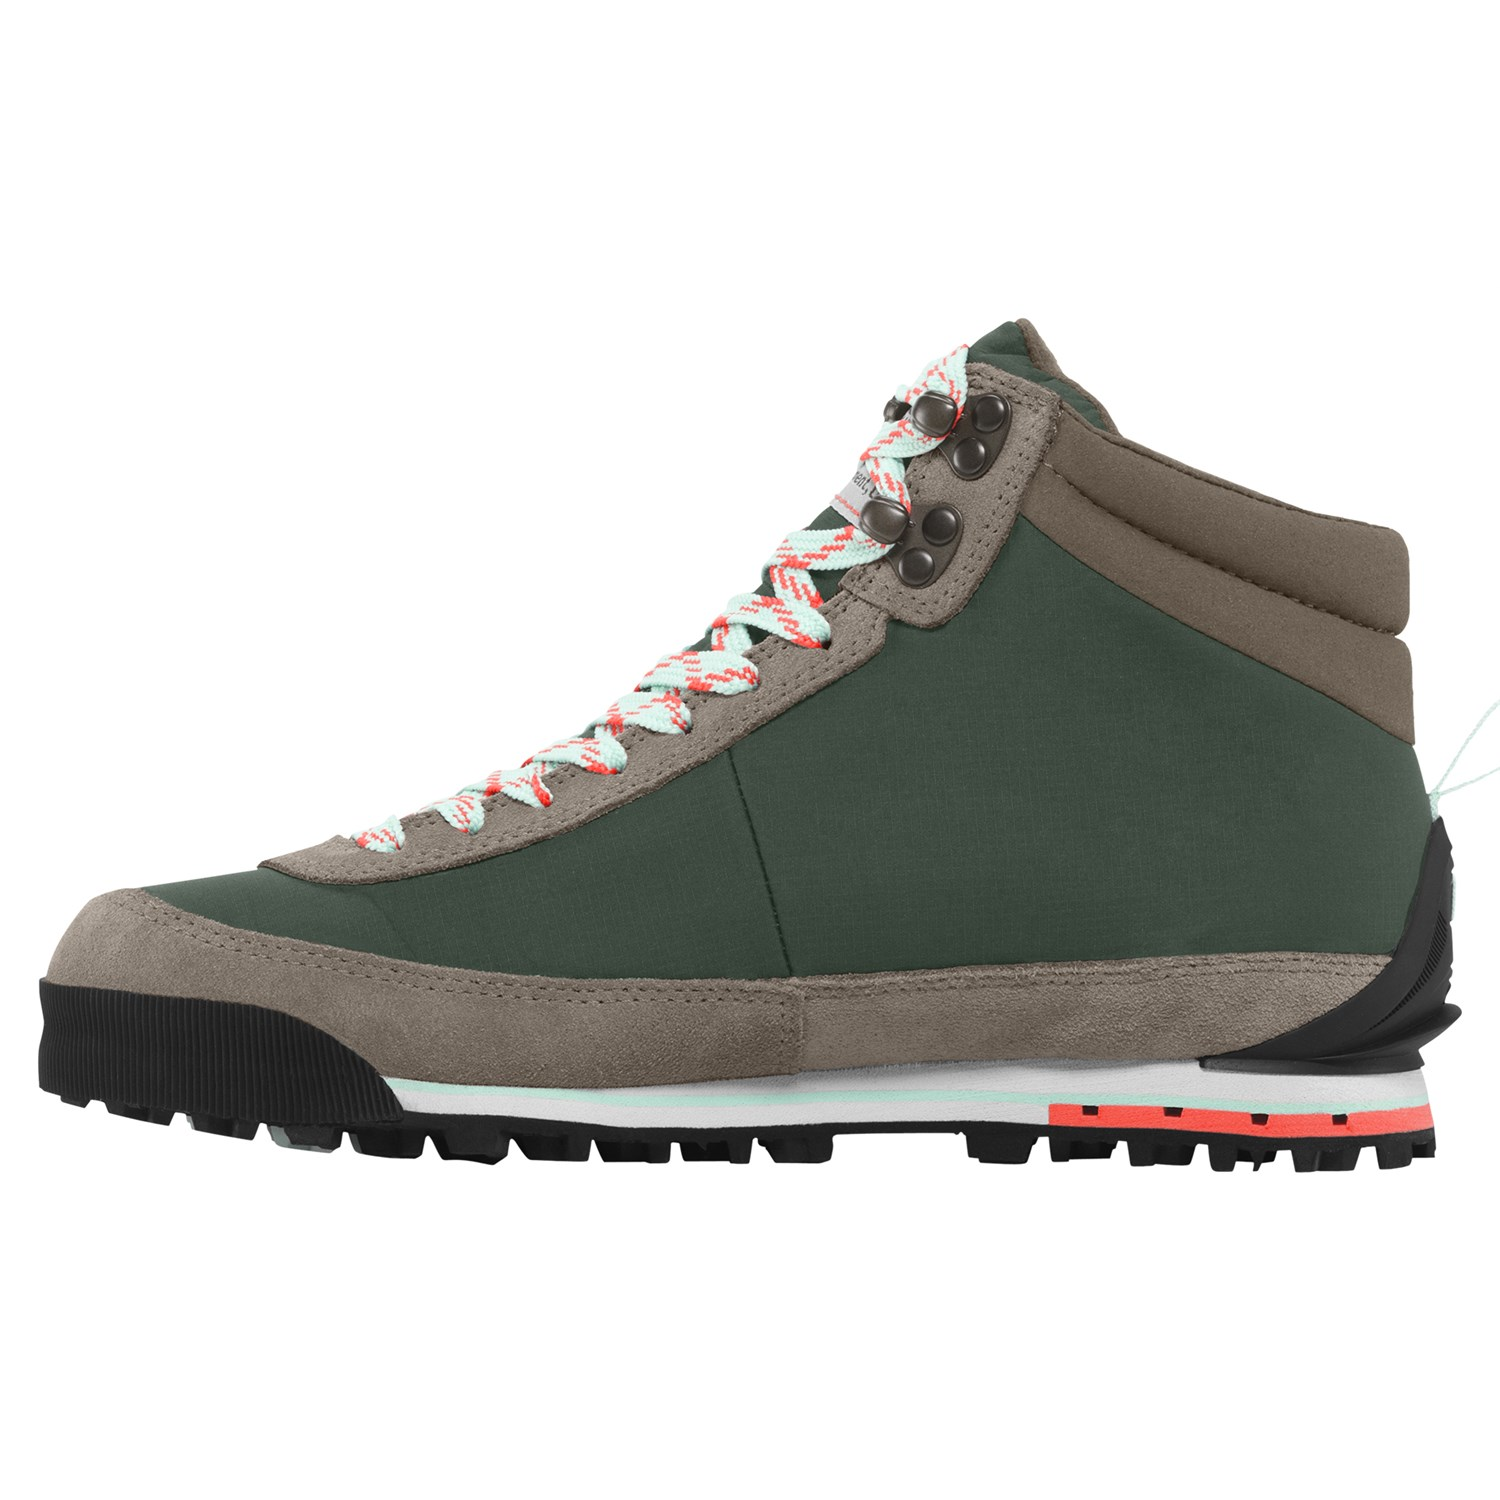 7554704b7 The North Face Back-To-Berkeley II Boots - Women's